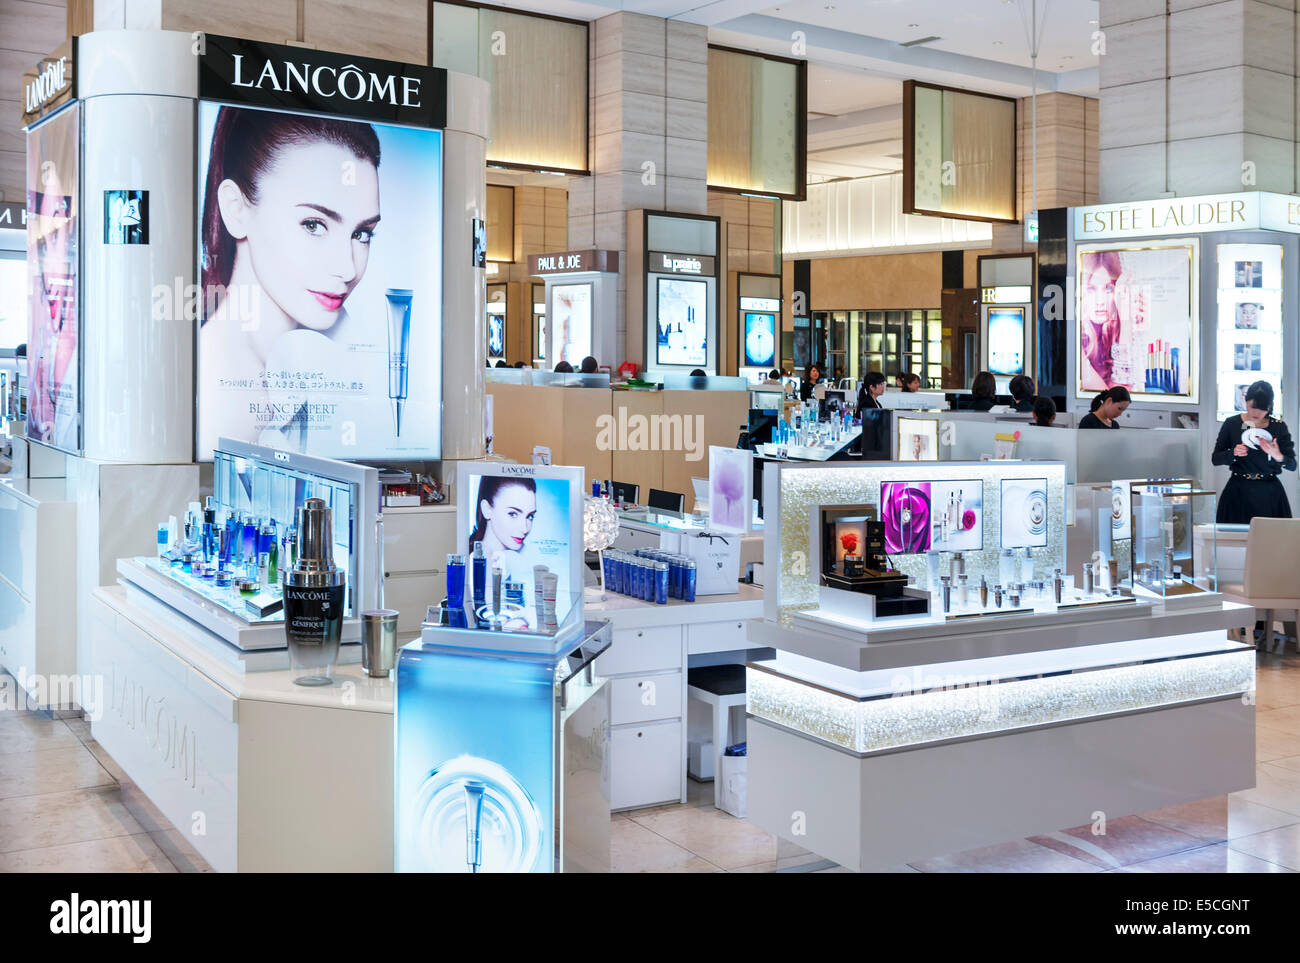 Lancome perfume and cosmetics store display in Tokyo, Japan - Stock Image